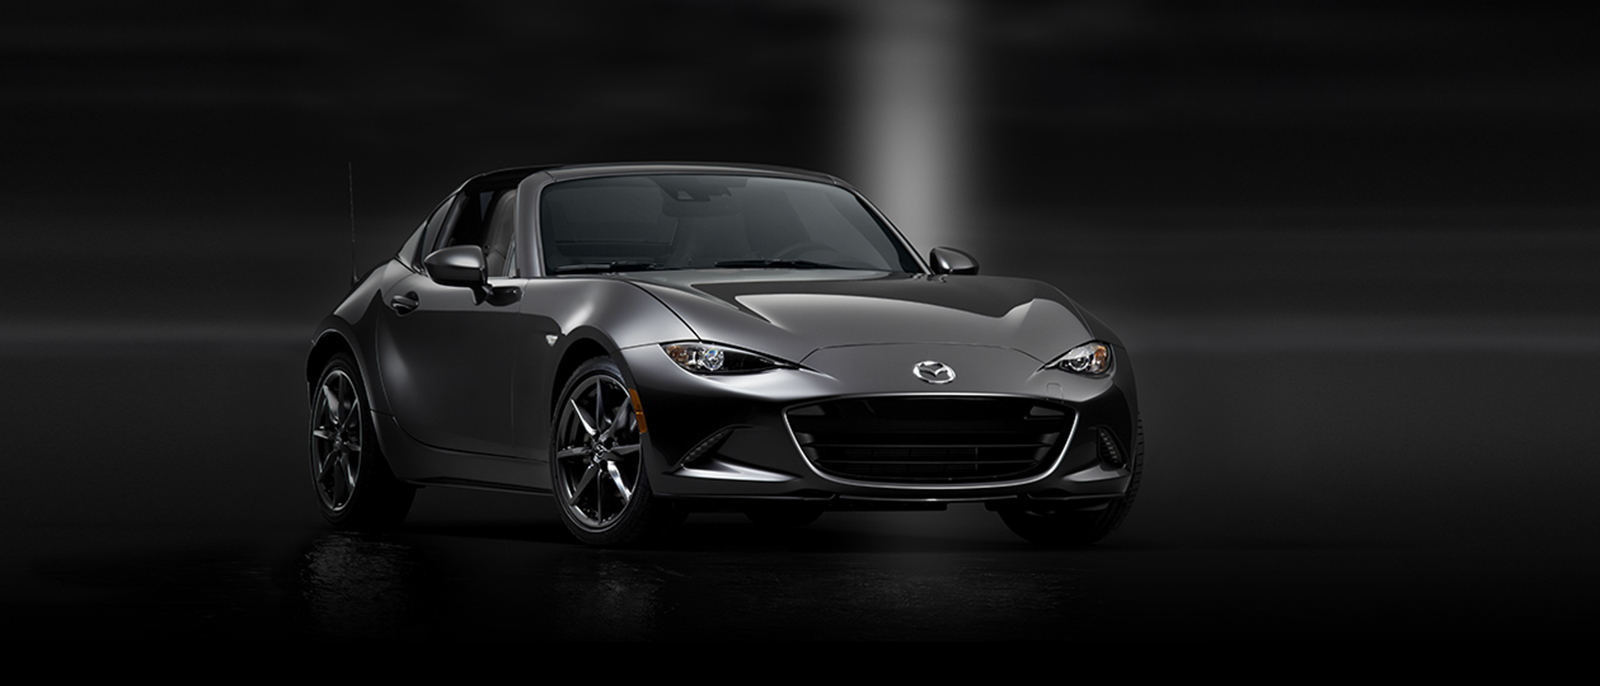 2016 Mazda MX-5 RF front view